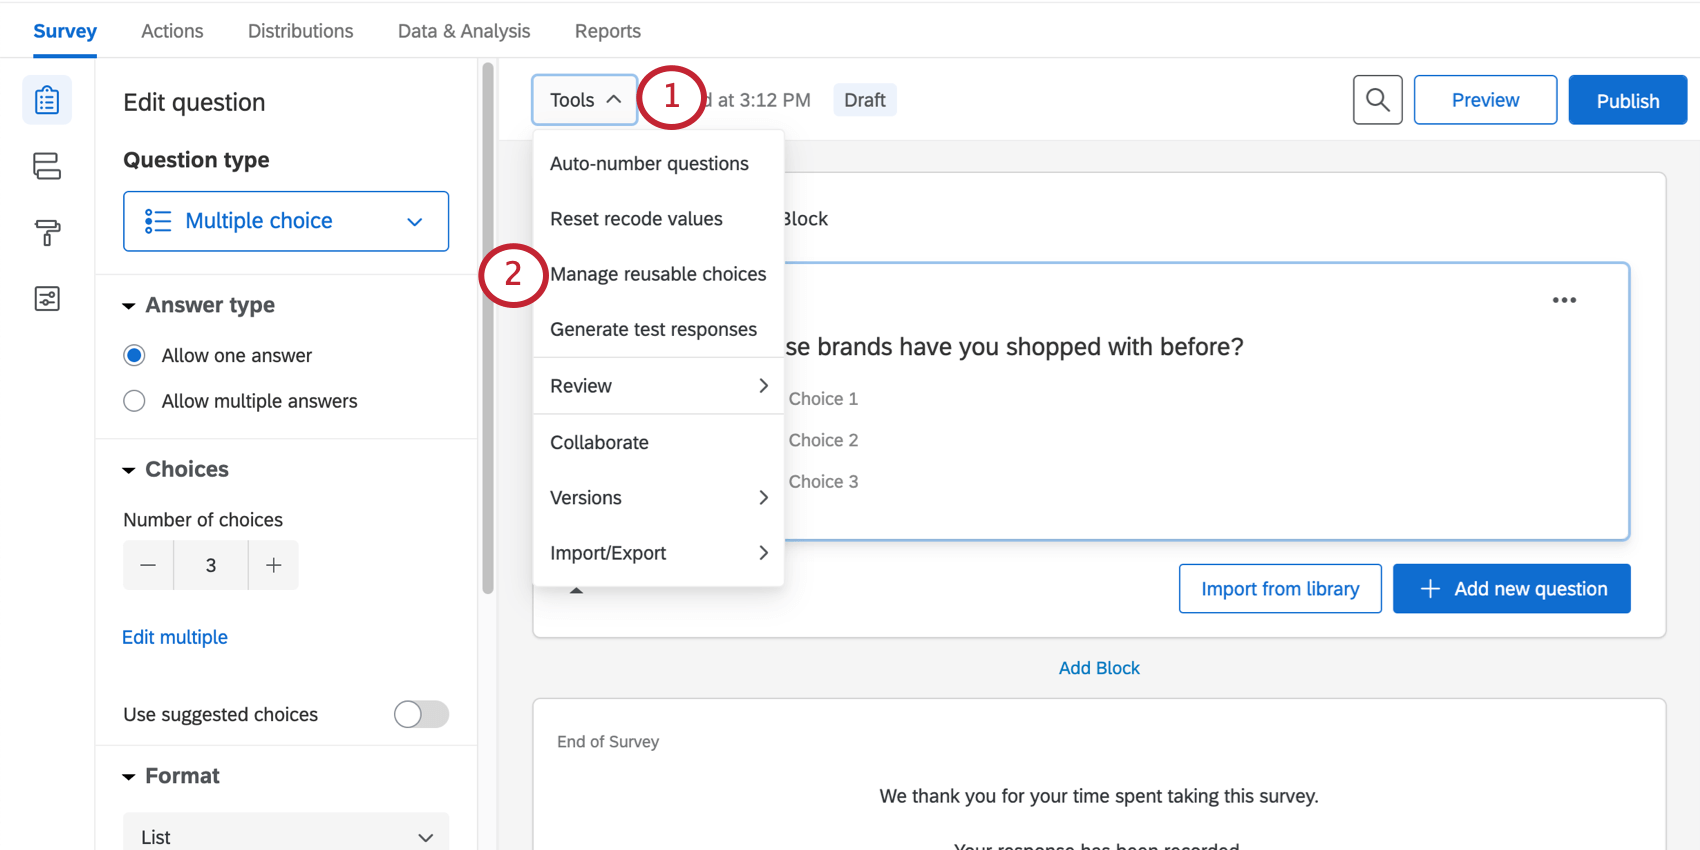 Selecting Manage reusable Choices from the Tools menu